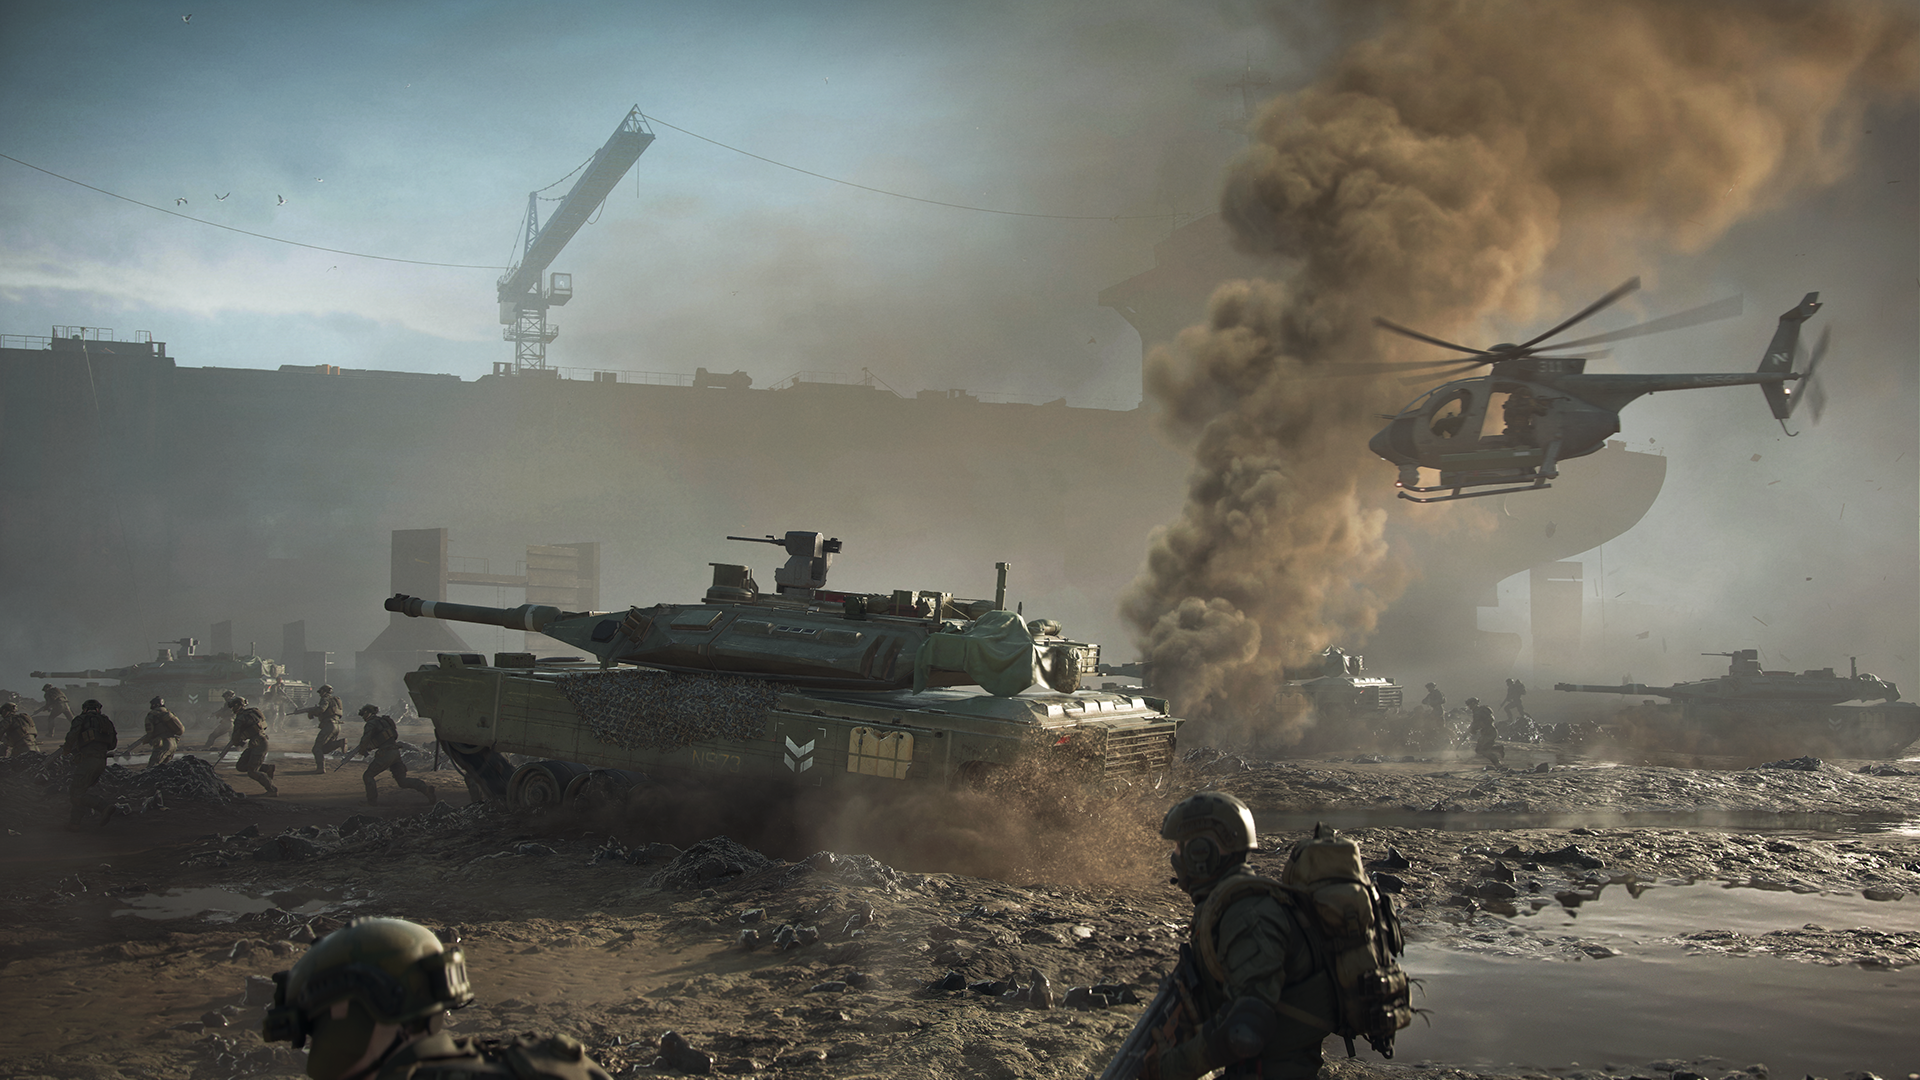 Image of Tank and Helicopter from Battlefield 2042